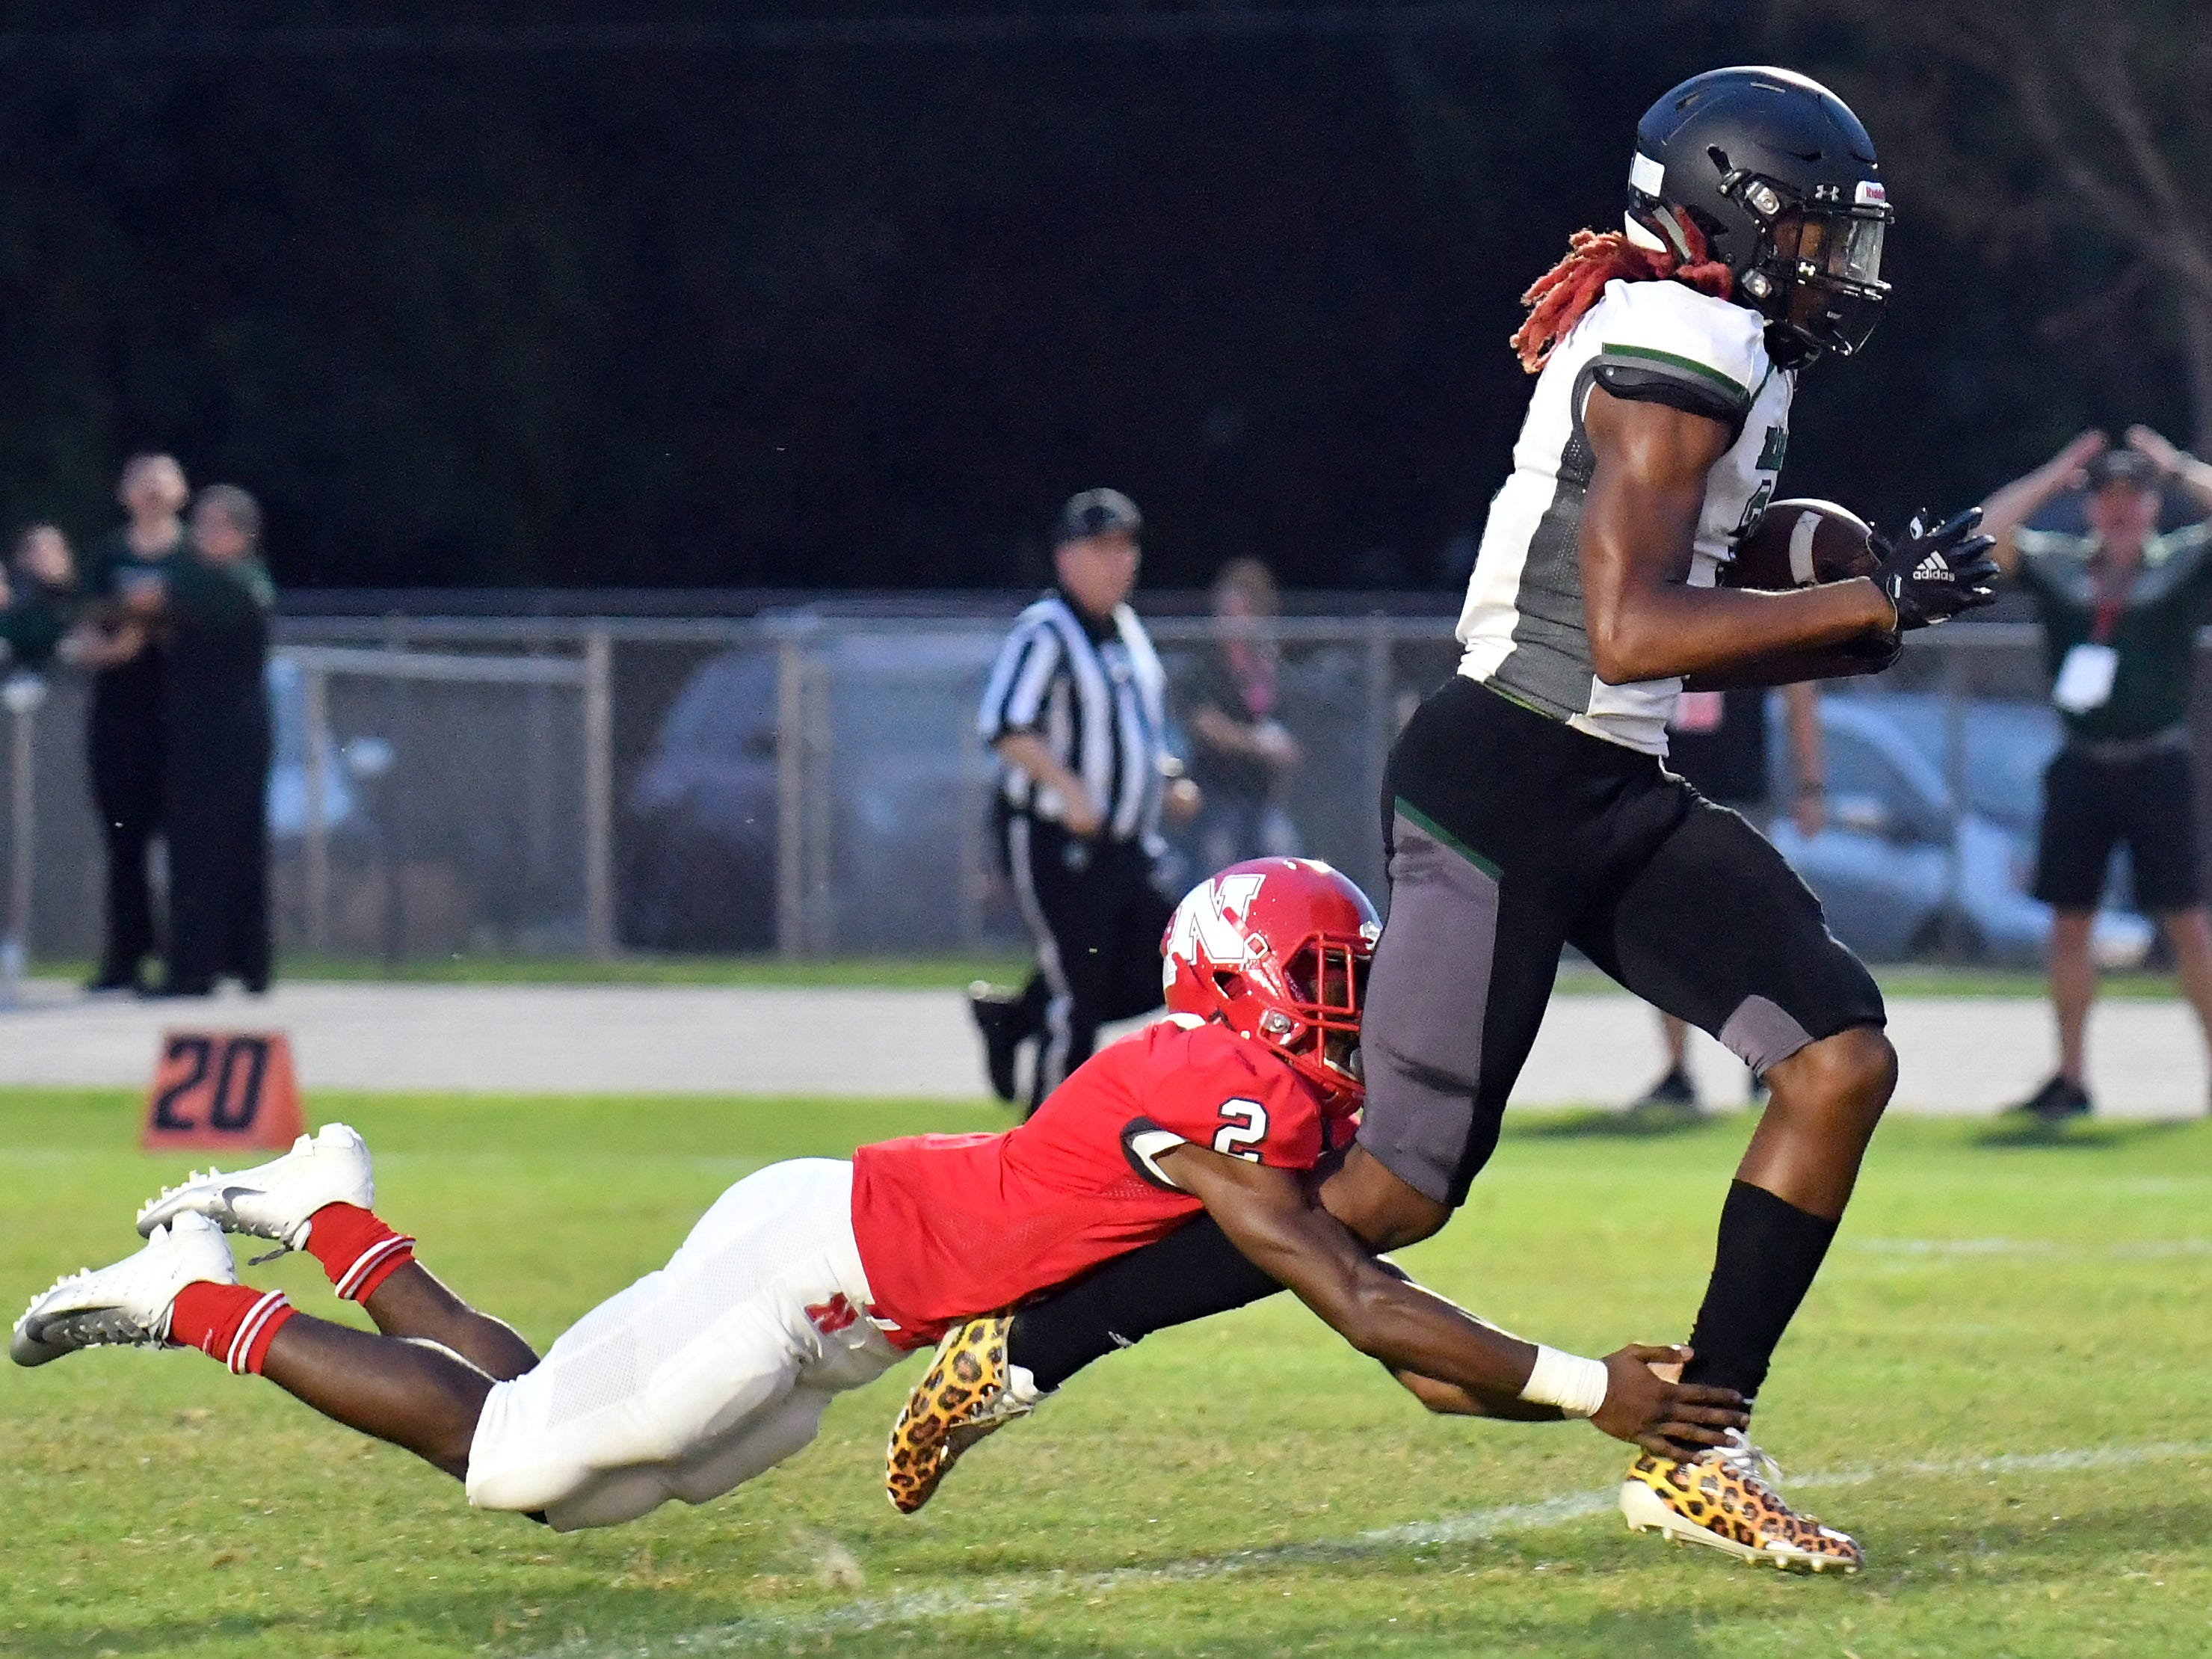 Palmetto Ridge High School Kamonte Grimes (3) catches a pass over Tyrone Campbell (2) of North Fort Myers High School, Friday, Sept. 7, 2018. (Chris Tilley/Special to the Naples Daily News)